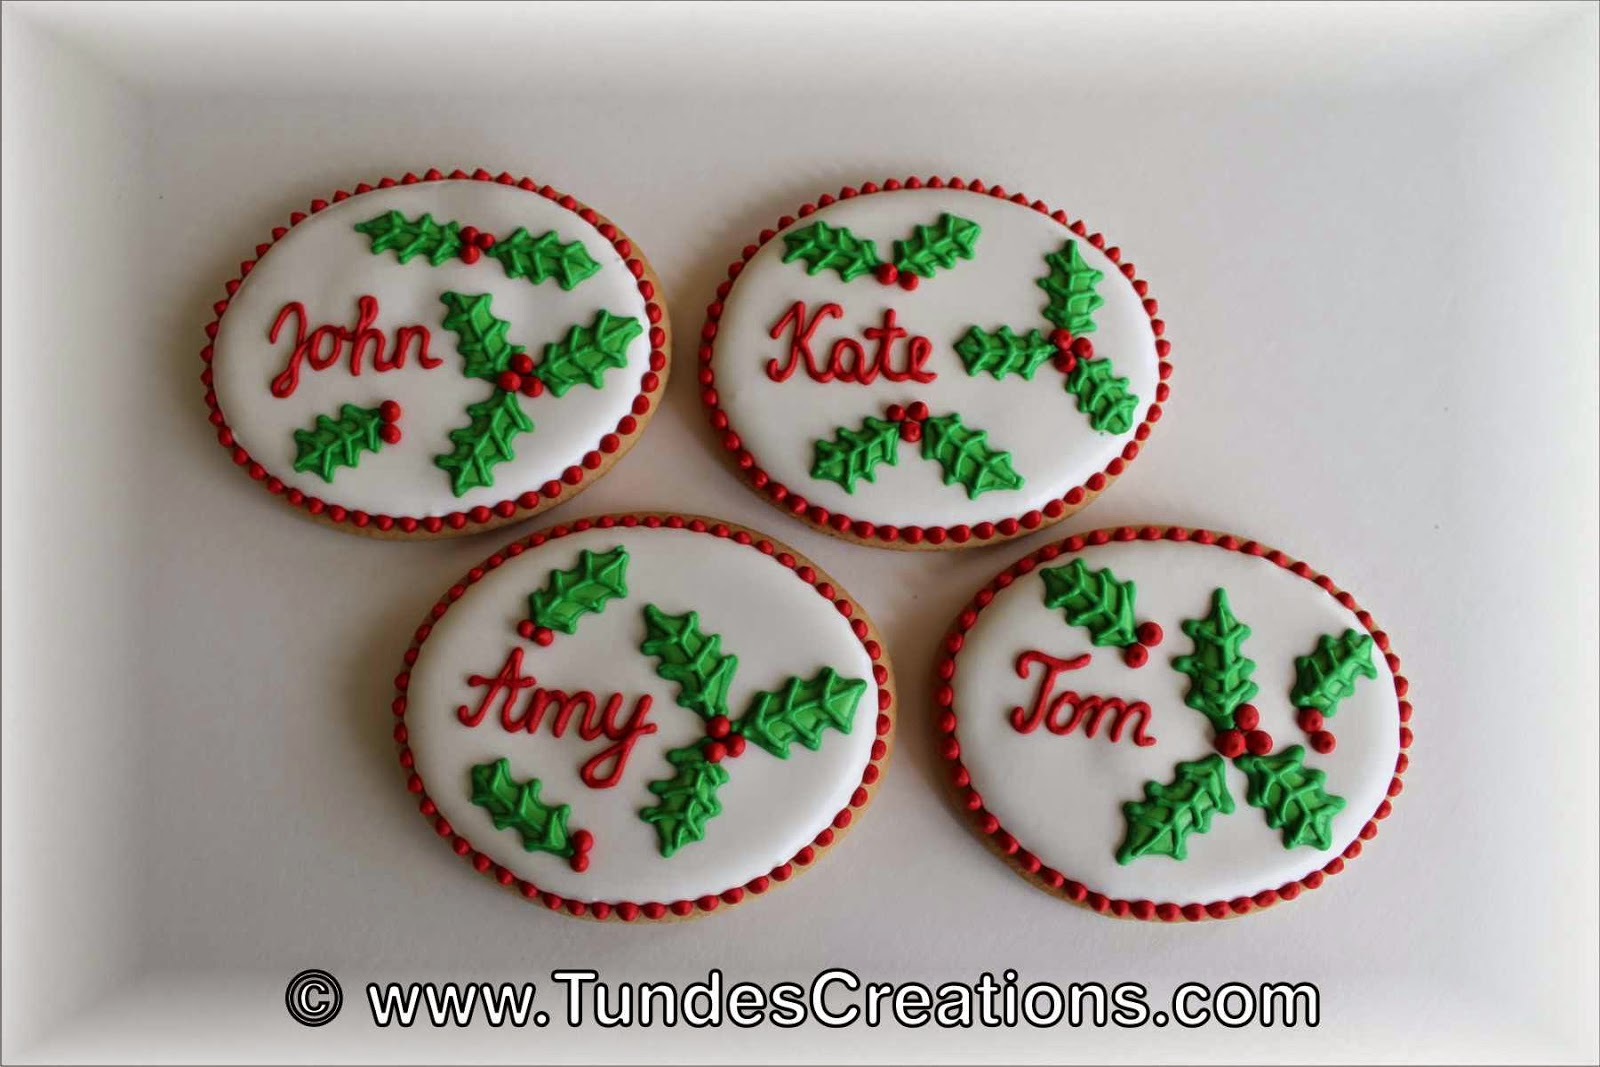 Gingerbread Christmas place card with Holy pattern